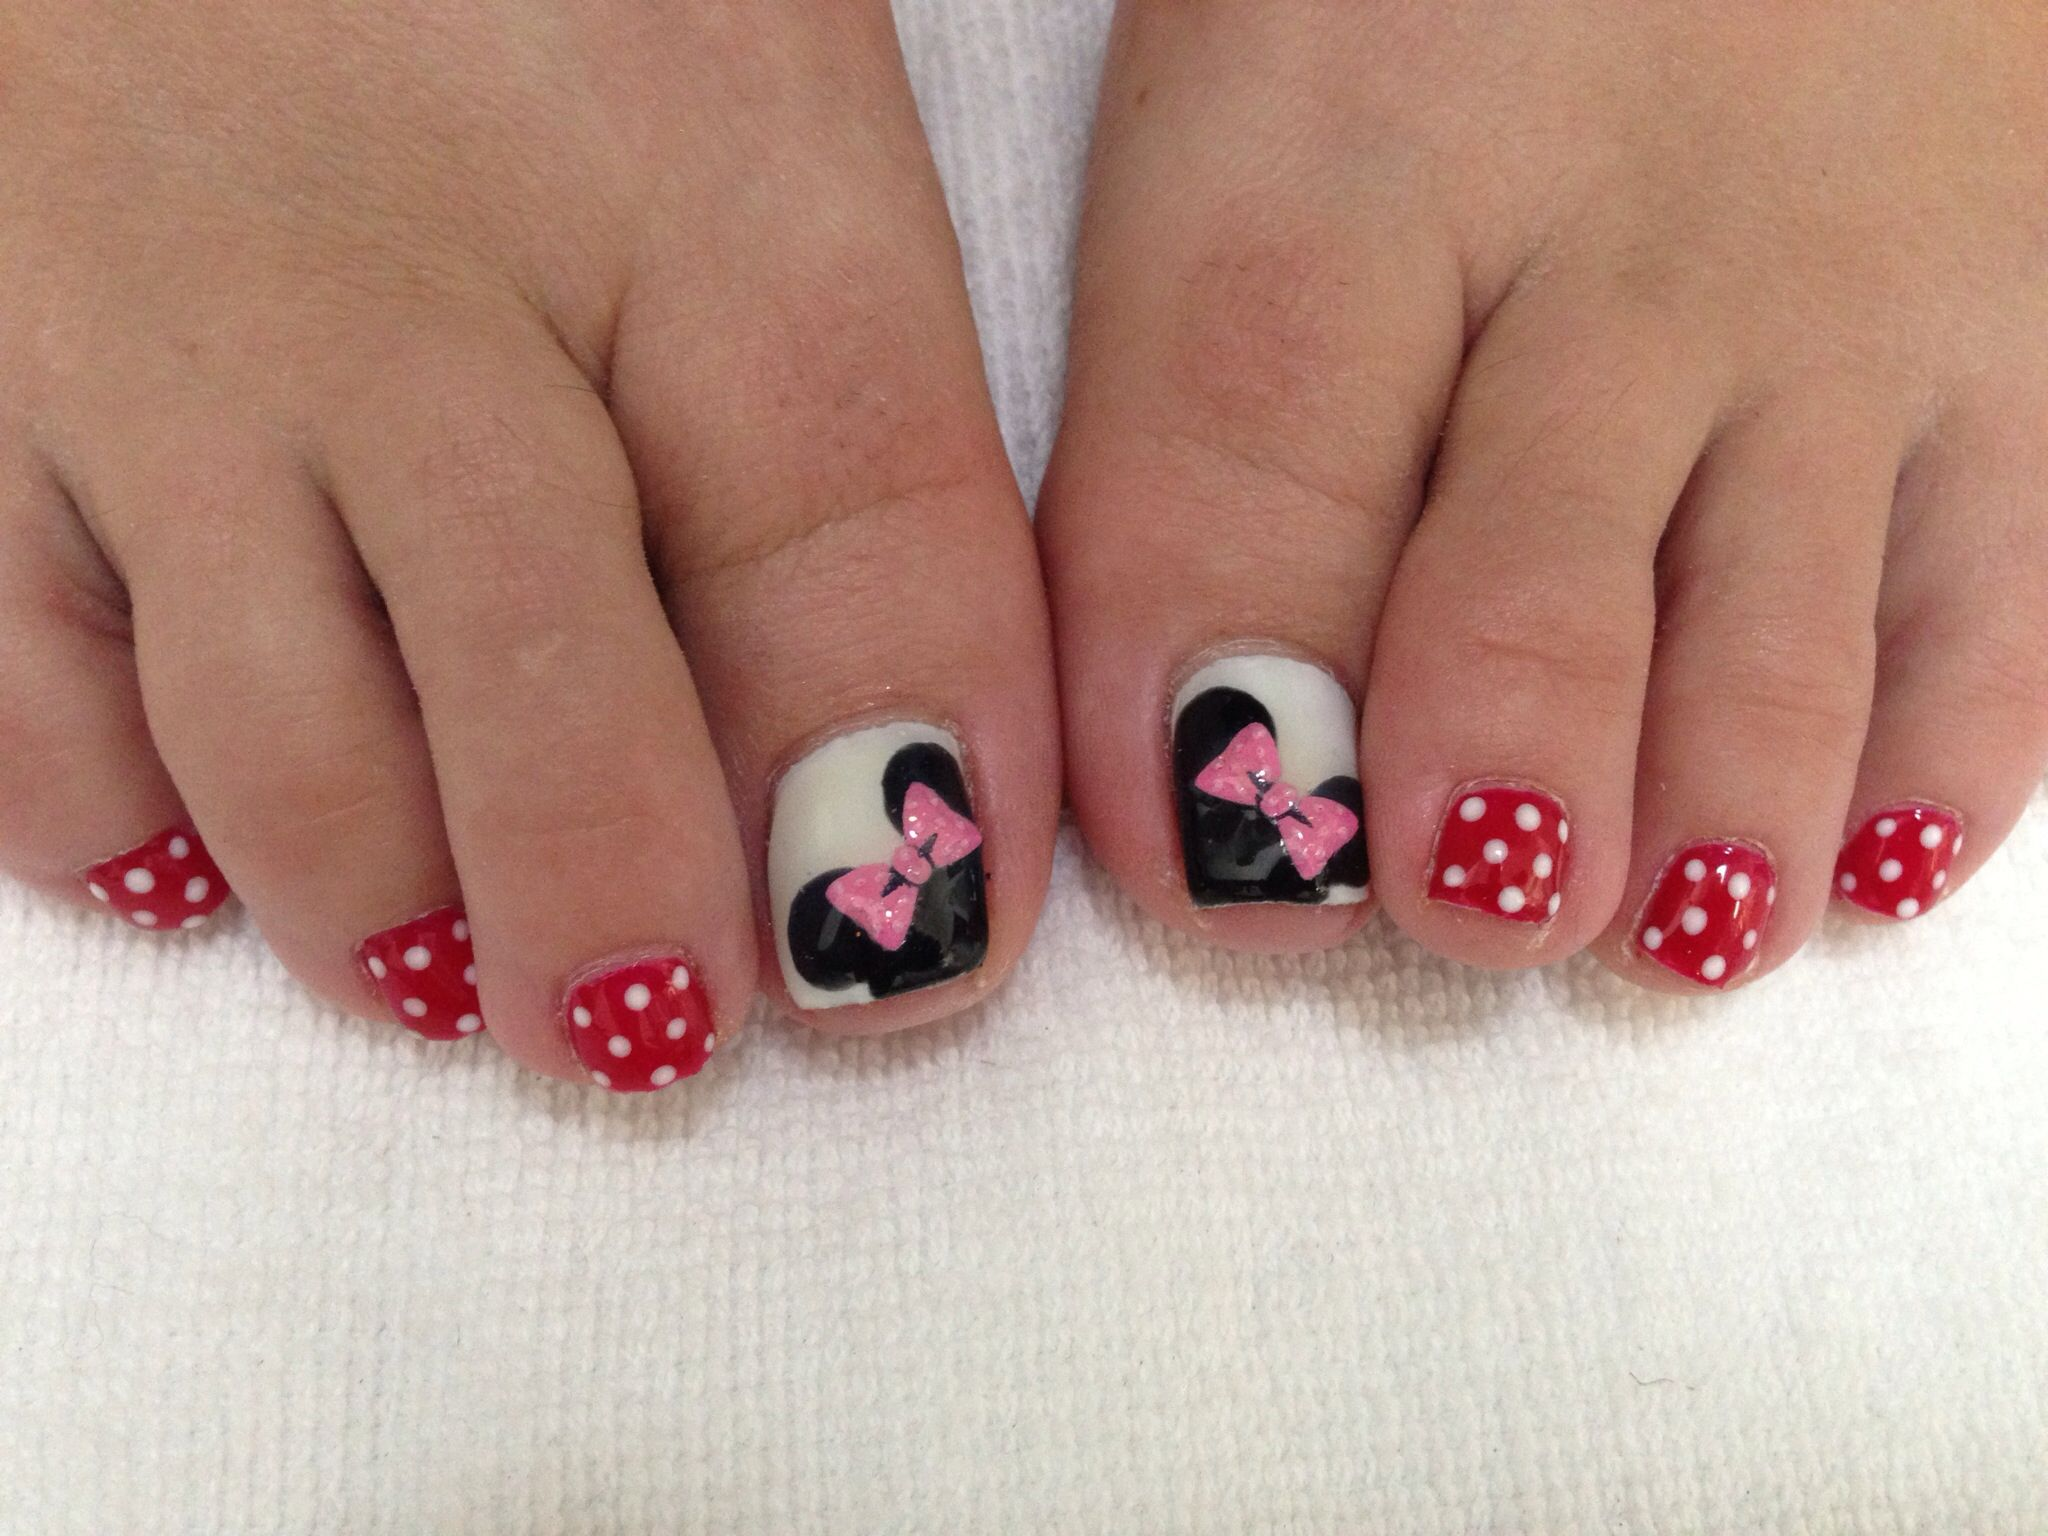 Minnie Mouse toe nails | "|2048|1536|?|en|2|ad9c4639552fe8f9bd4b1cbdfb97afa5|False|UNLIKELY|0.3702349066734314